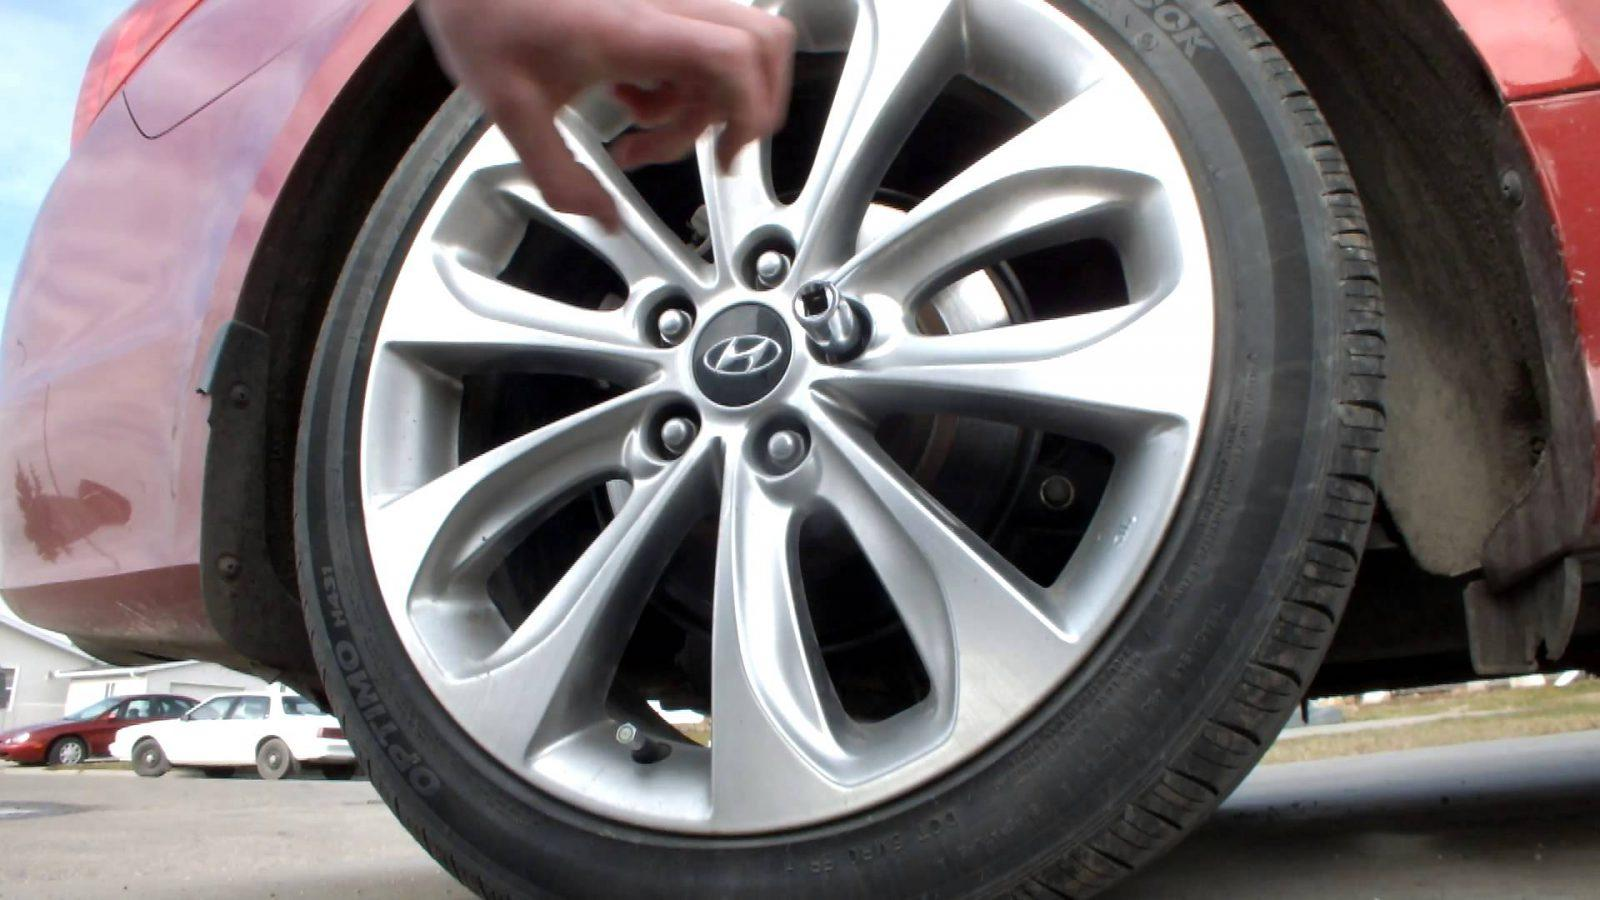 How To Remove Rounded Lug Nuts Like A Pro CAR FROM JAPAN - Acura mdx wheel lock key